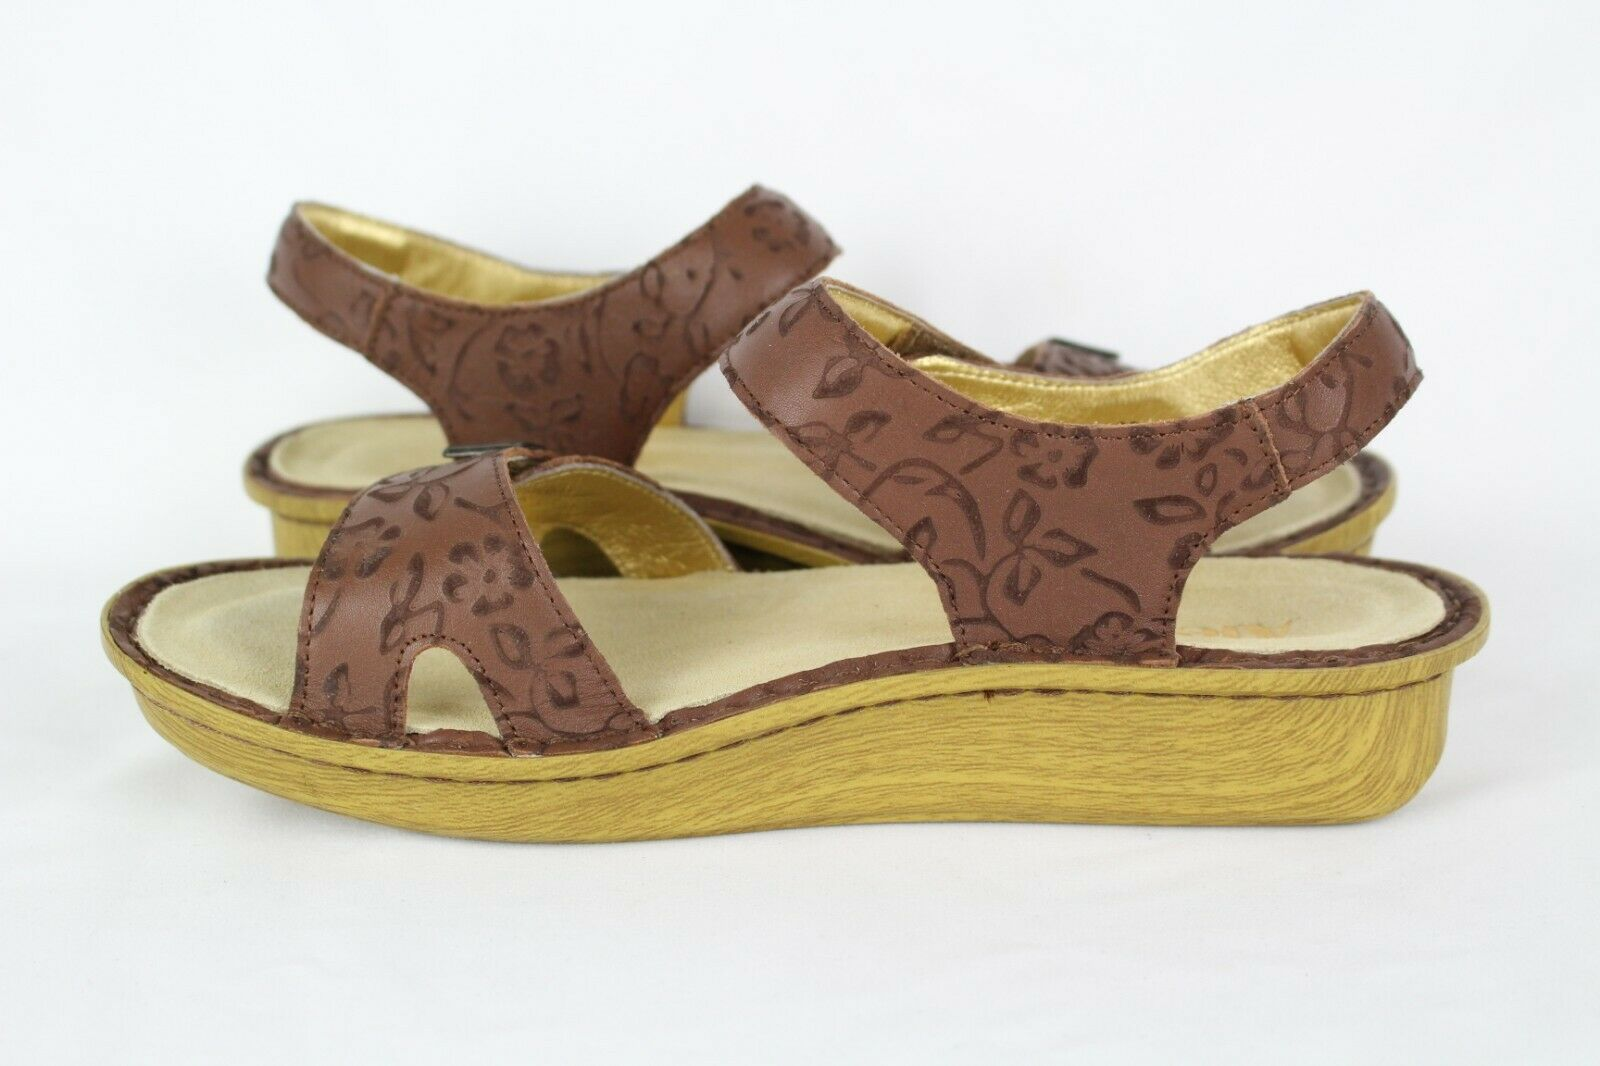 New Alegria Wouomo Morning Glory Sandals Dimensione 8.5 EUR 39 39 39 Tan ea3373